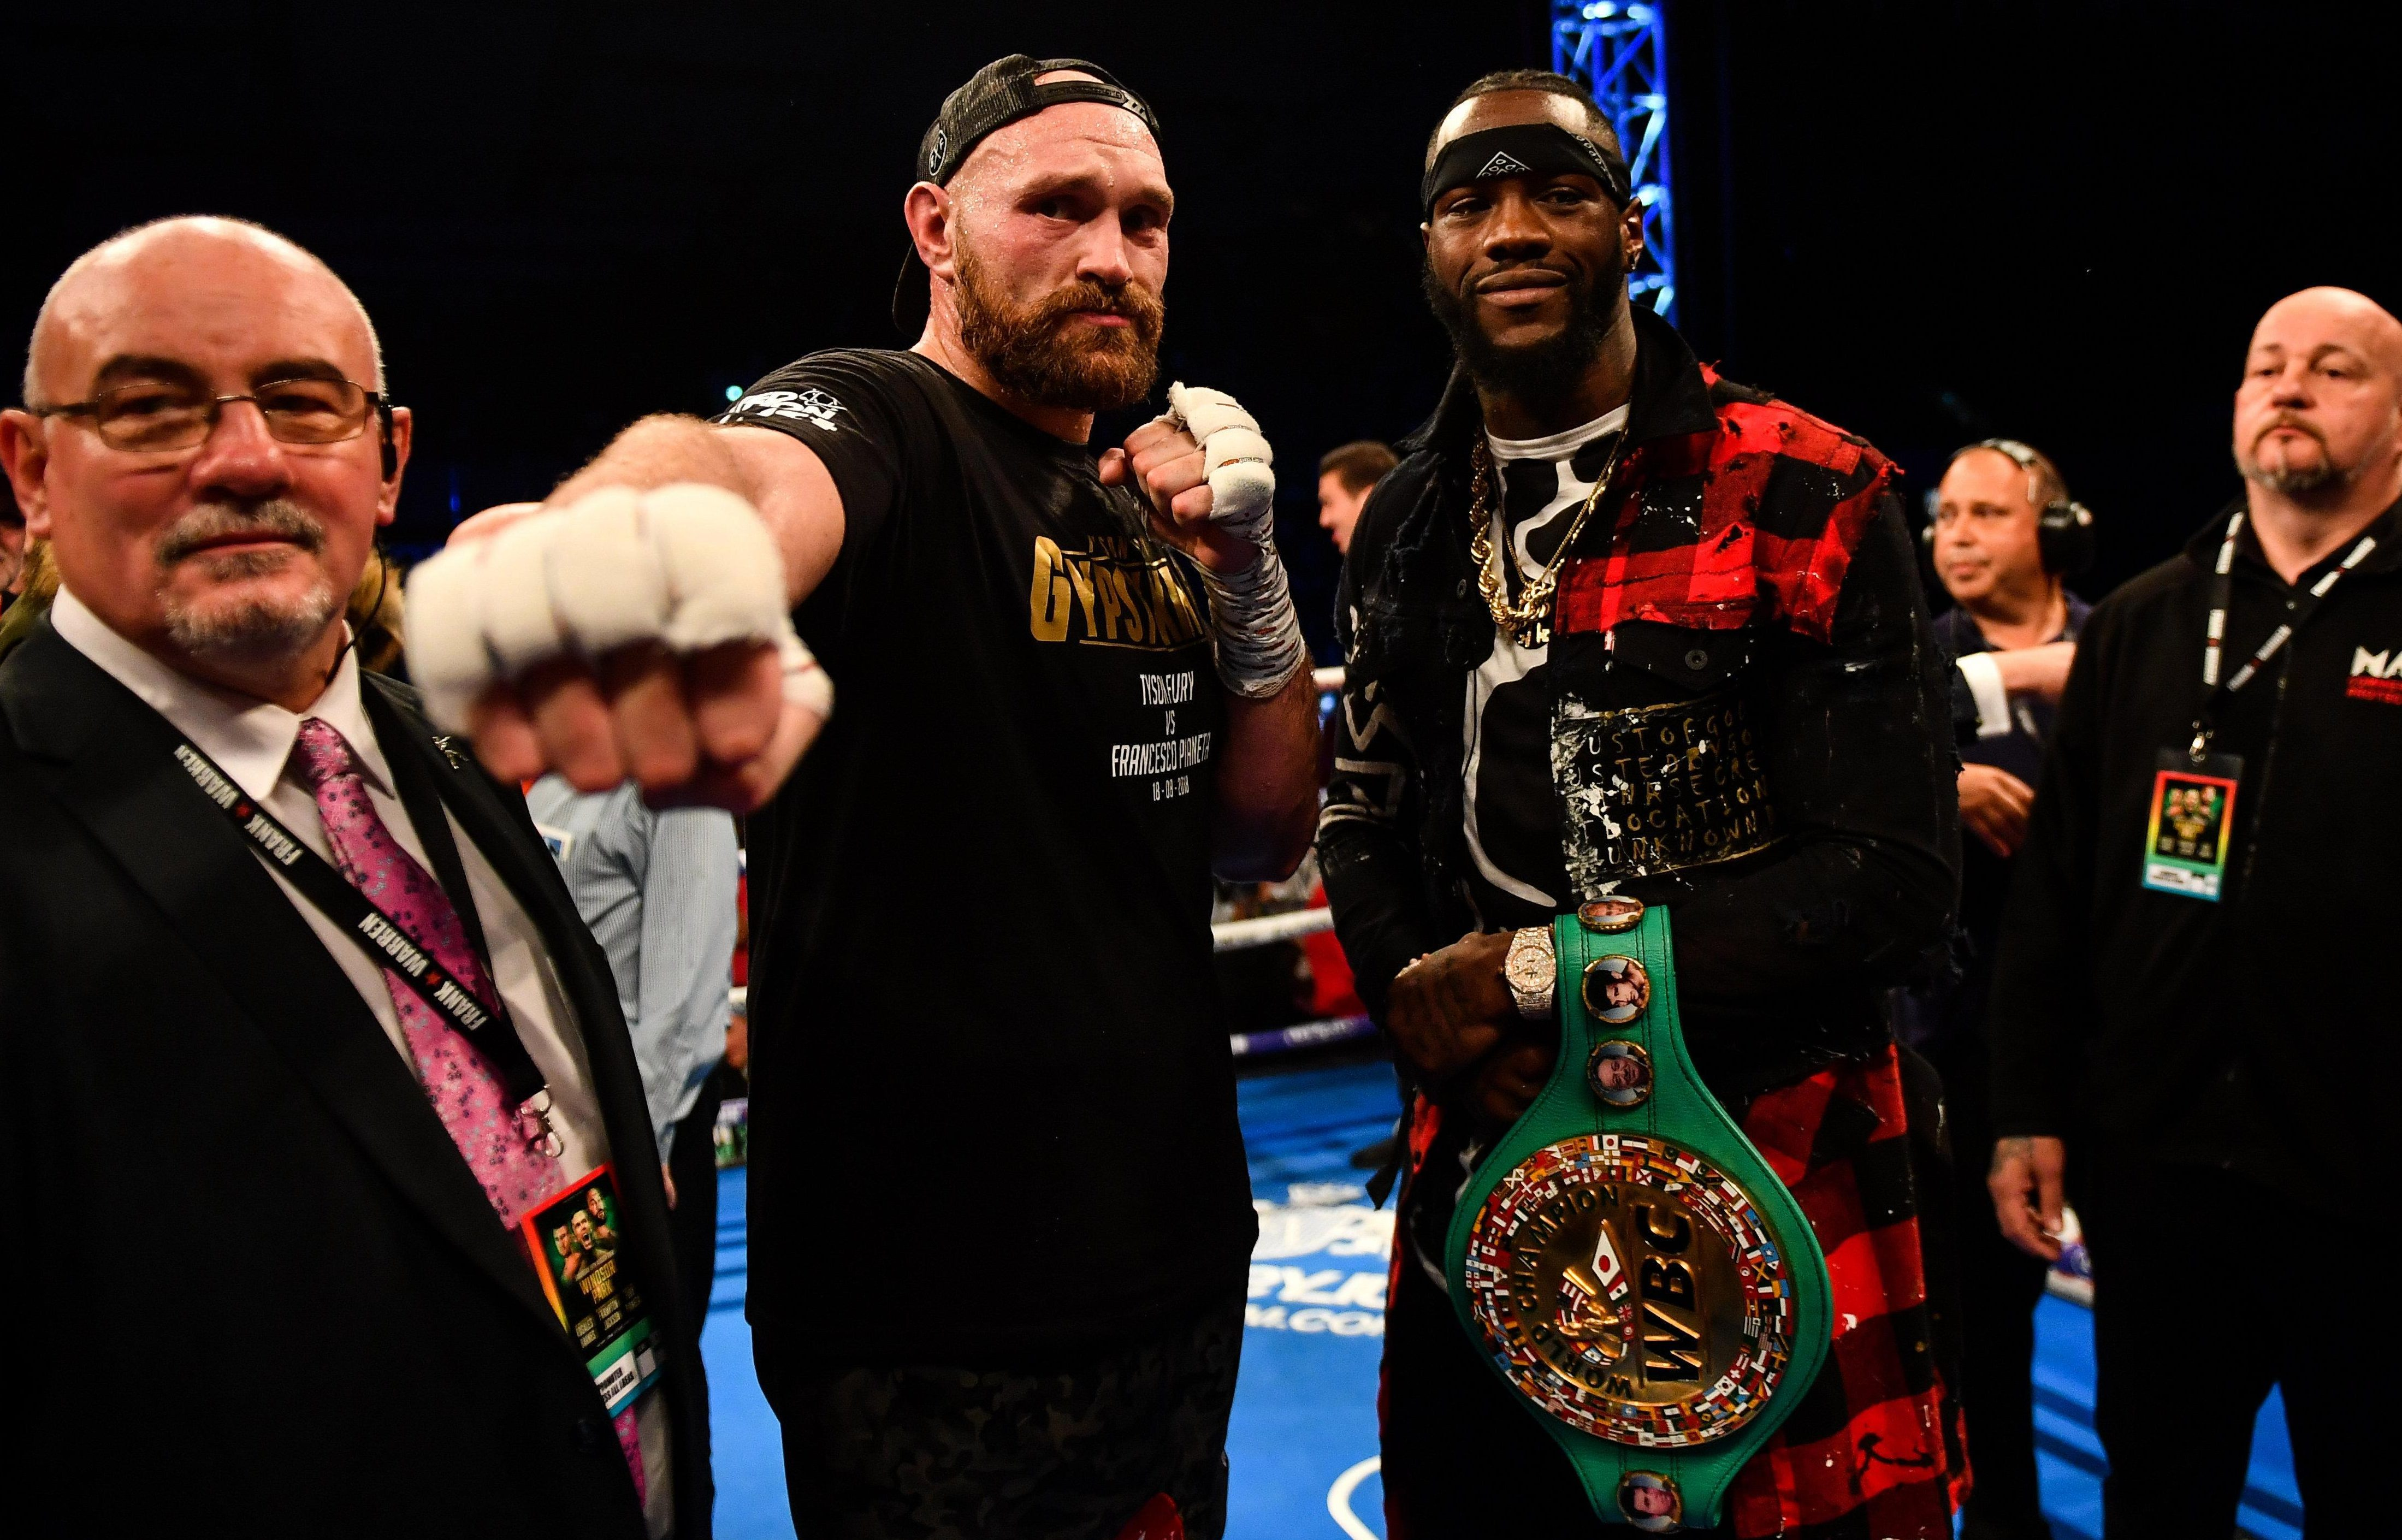 Tyson Fury and Deontay Wilder will face each other inside the ring on December 1